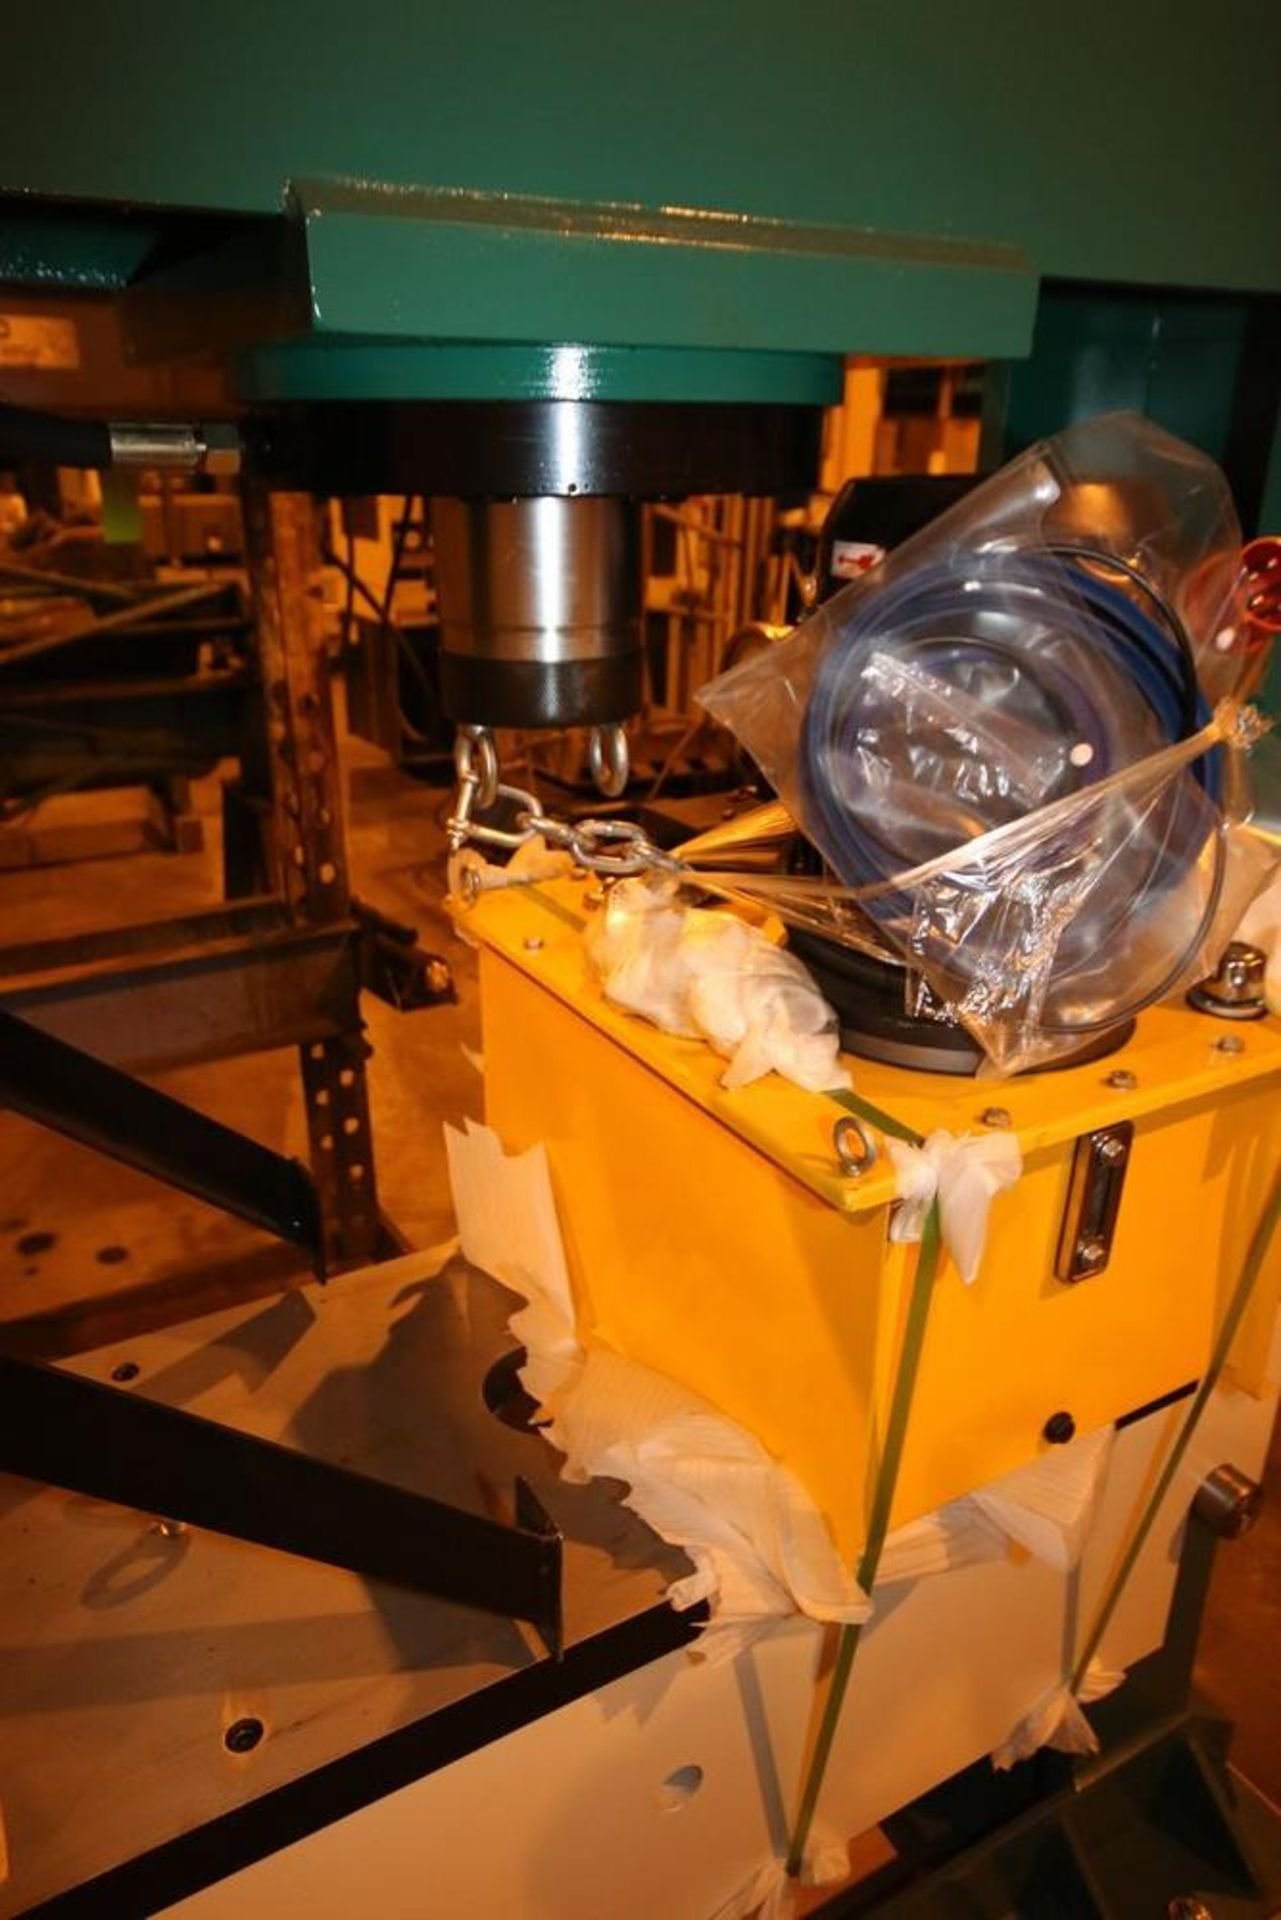 Lot 97 - NEW HPB Hydraulic Press/Bending Machine, HP-150 Series, with Hydraulic Pump and Reservoir (LOCATED